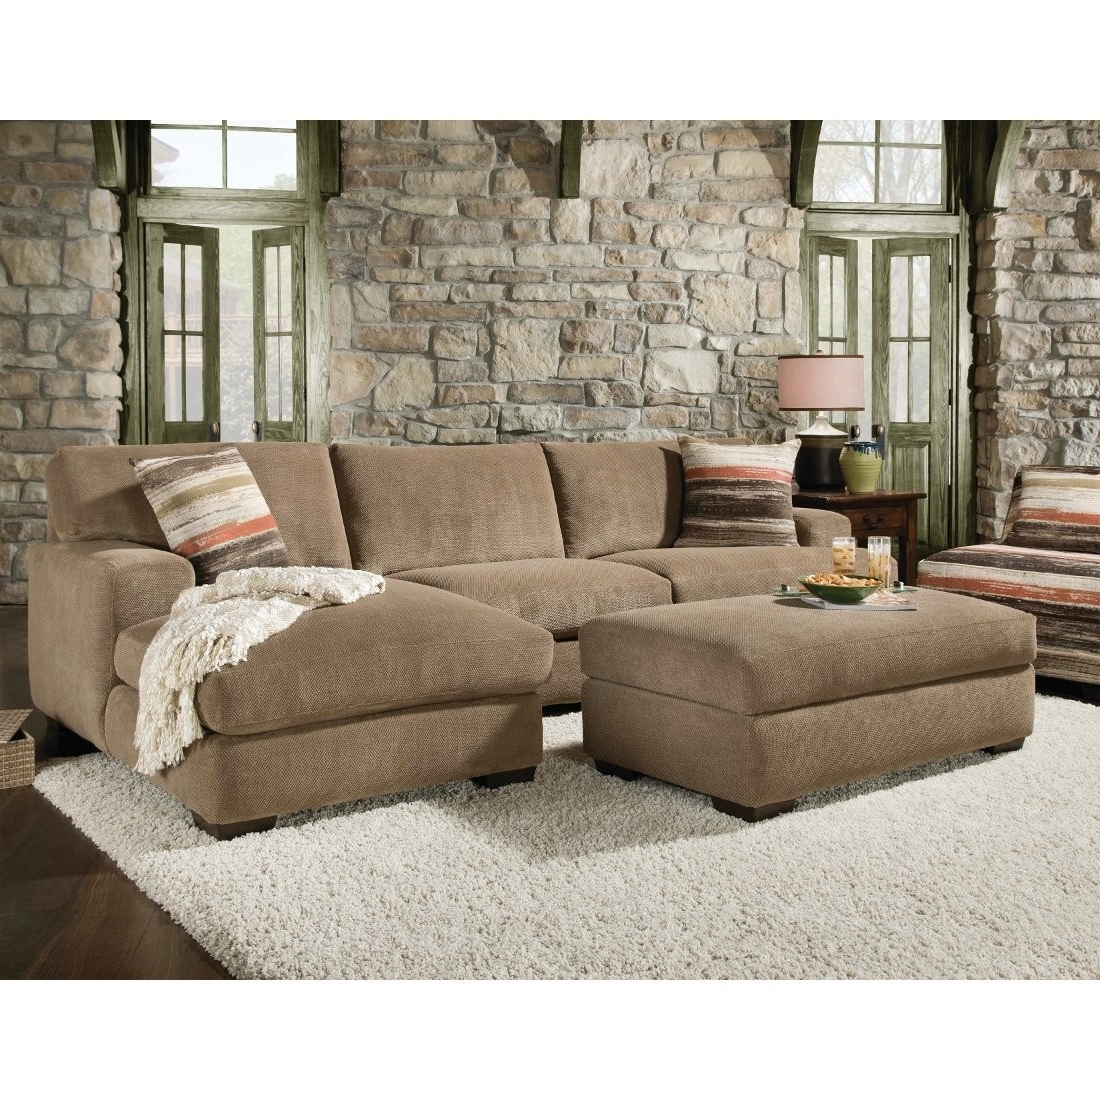 Homesfeed Regarding Famous 2 Piece Sectionals With Chaise (View 8 of 15)